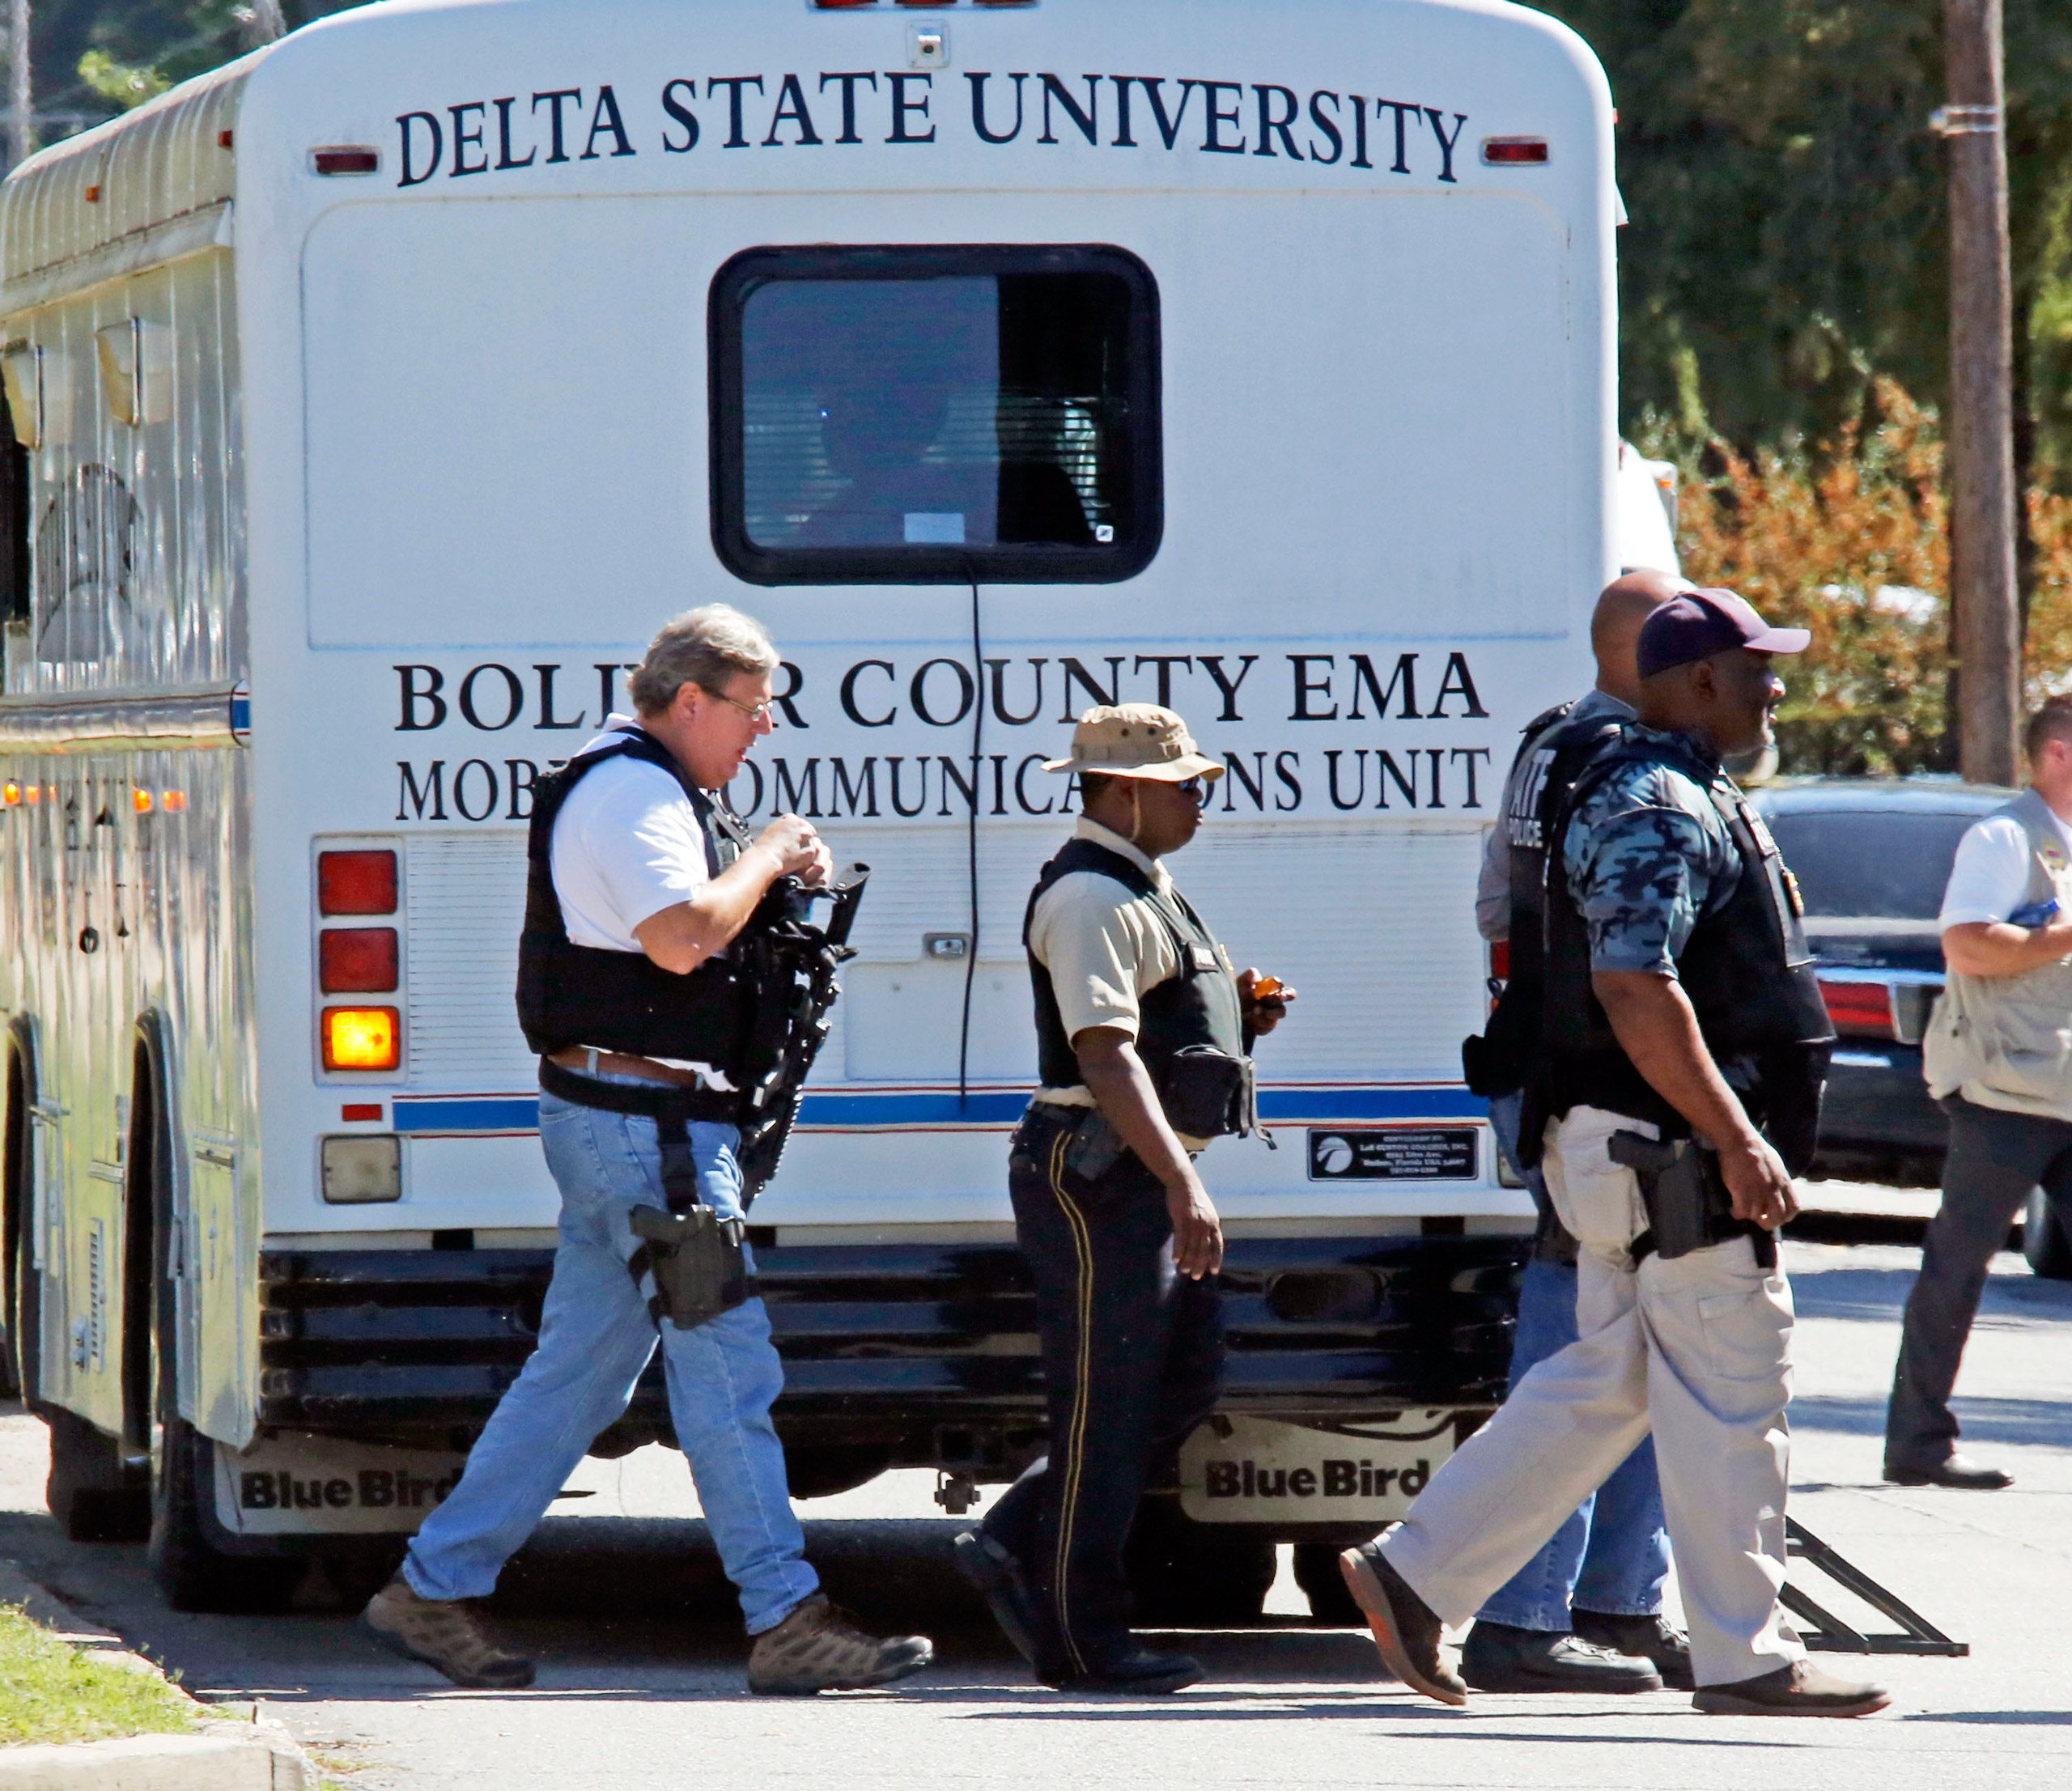 Law enforcement walk across the Delta State University campus to search for an active shooter in connection with the shooting of history professor Ethan Schmidt at Delta State University in Cleveland, Miss., on Sept. 14, 2015.